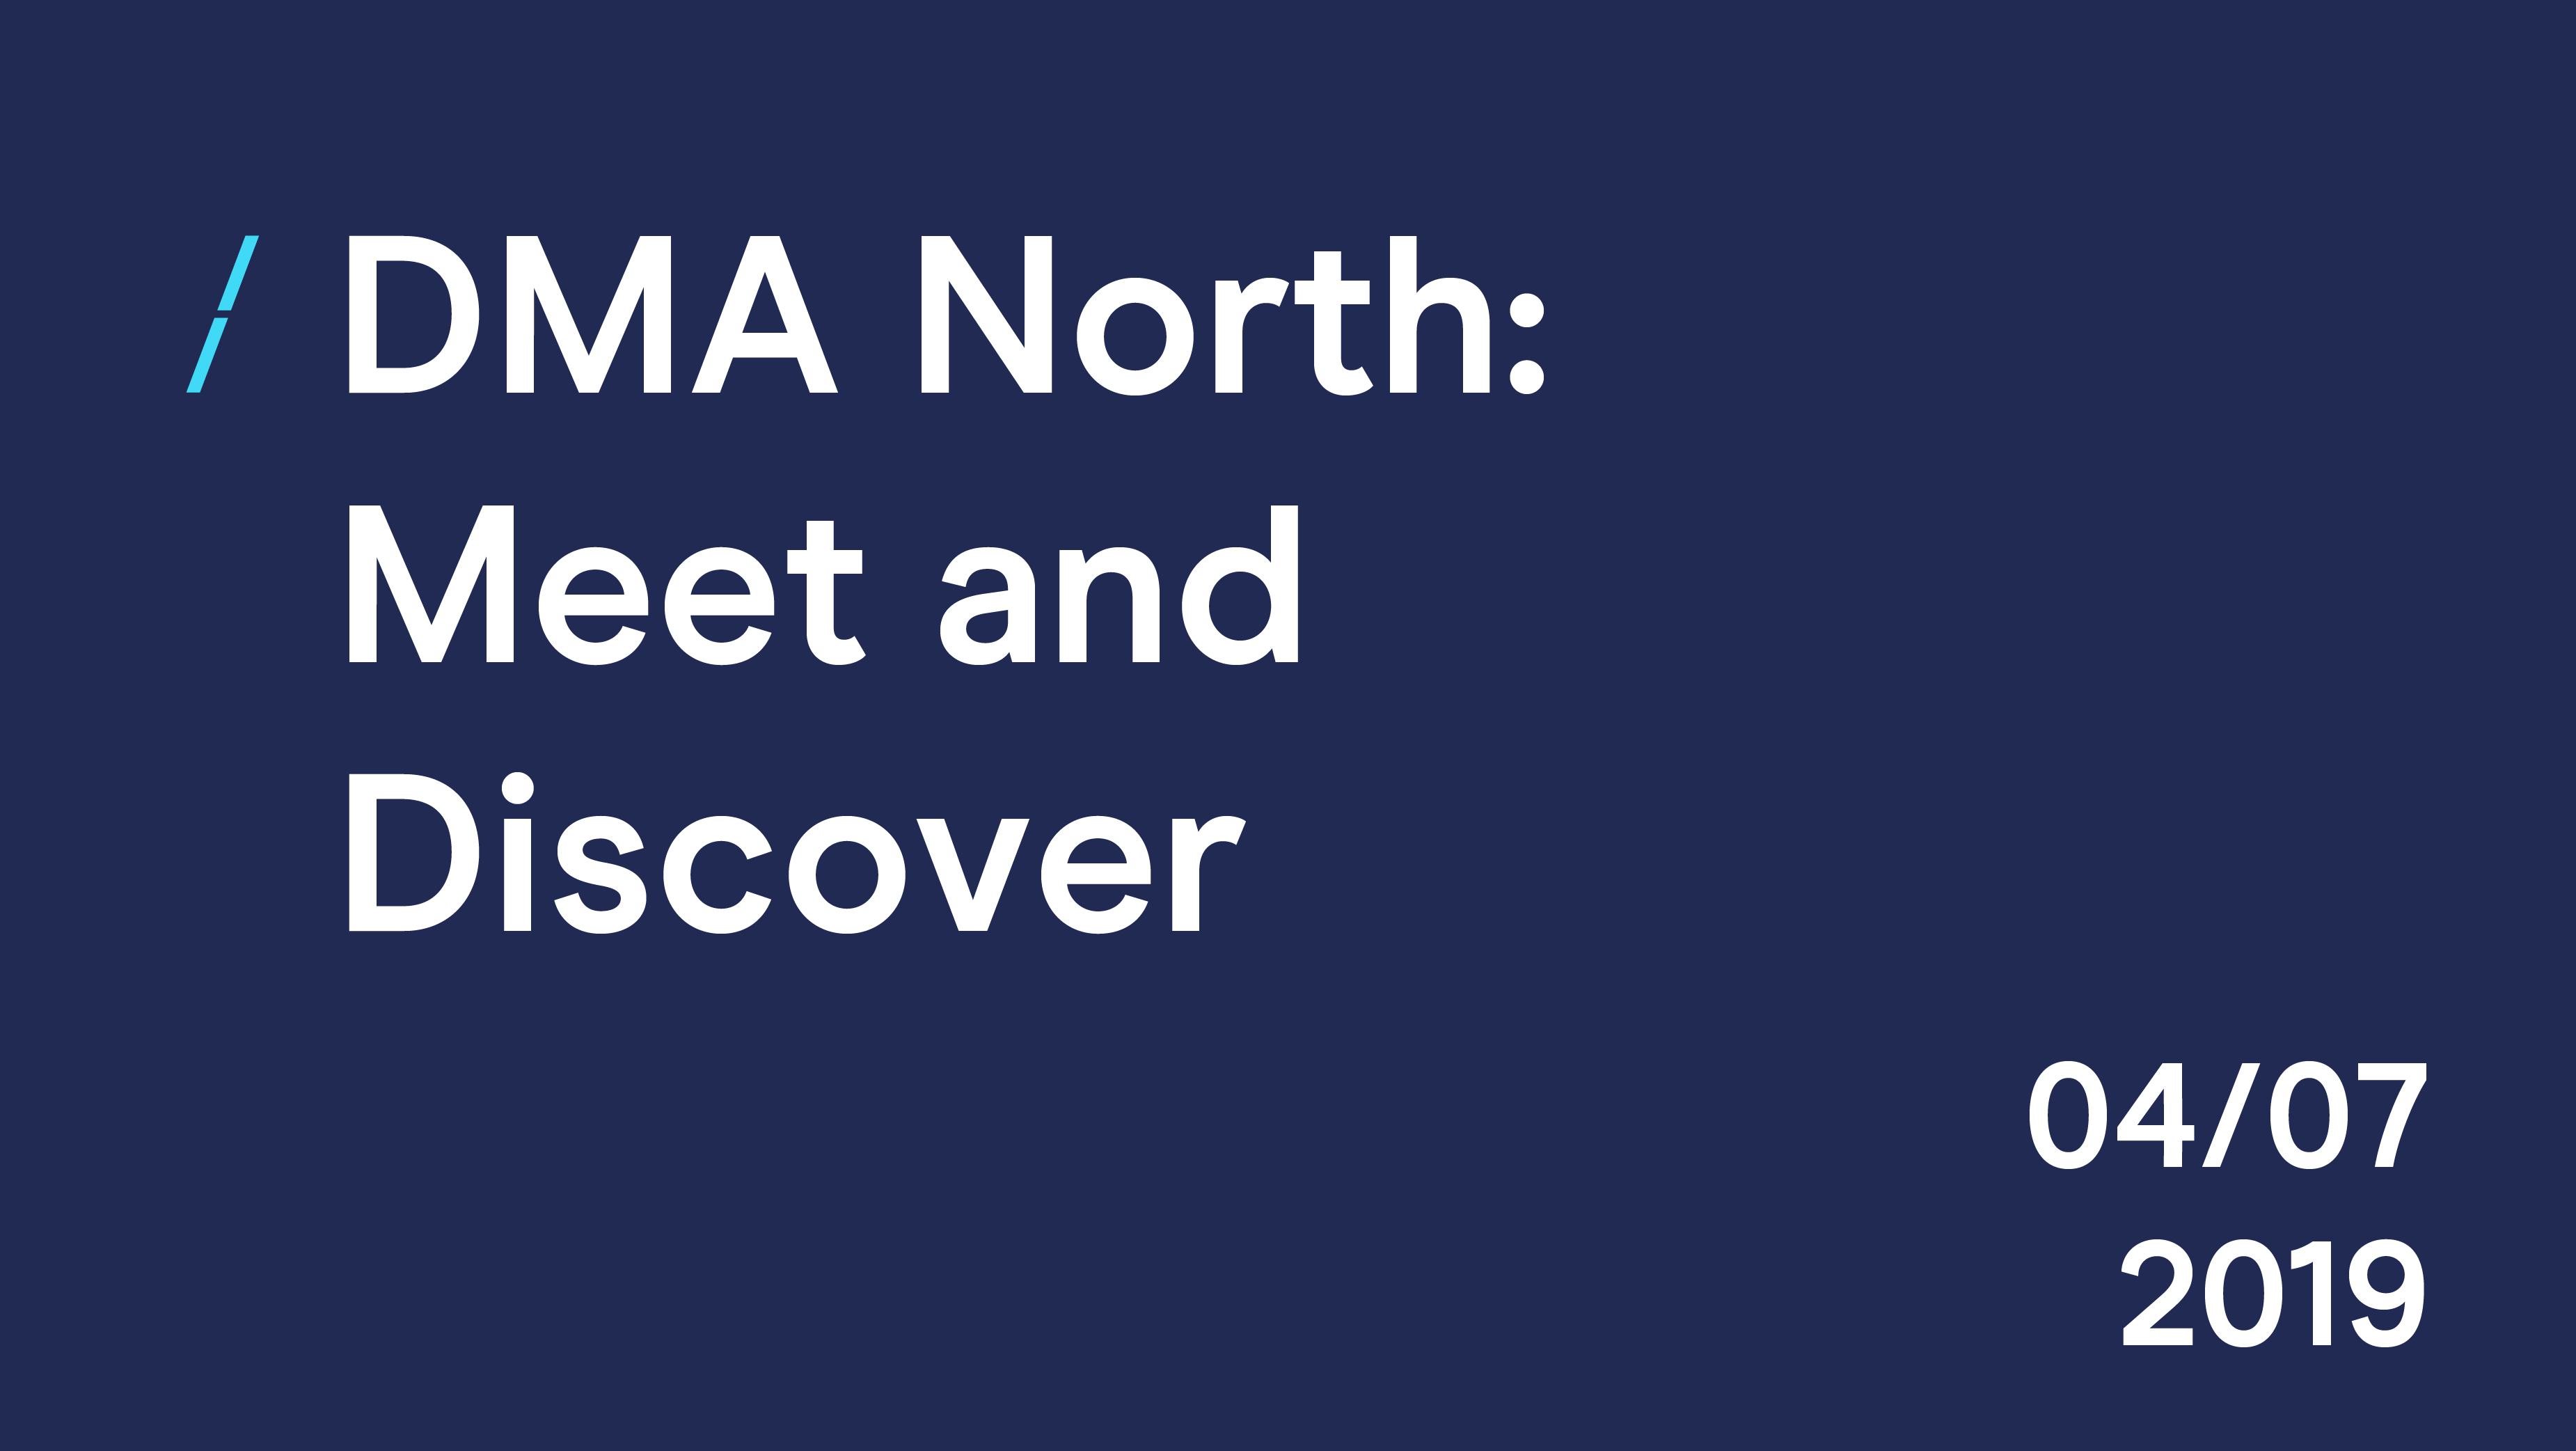 DMA North- Meet and Discover-87-87.jpg